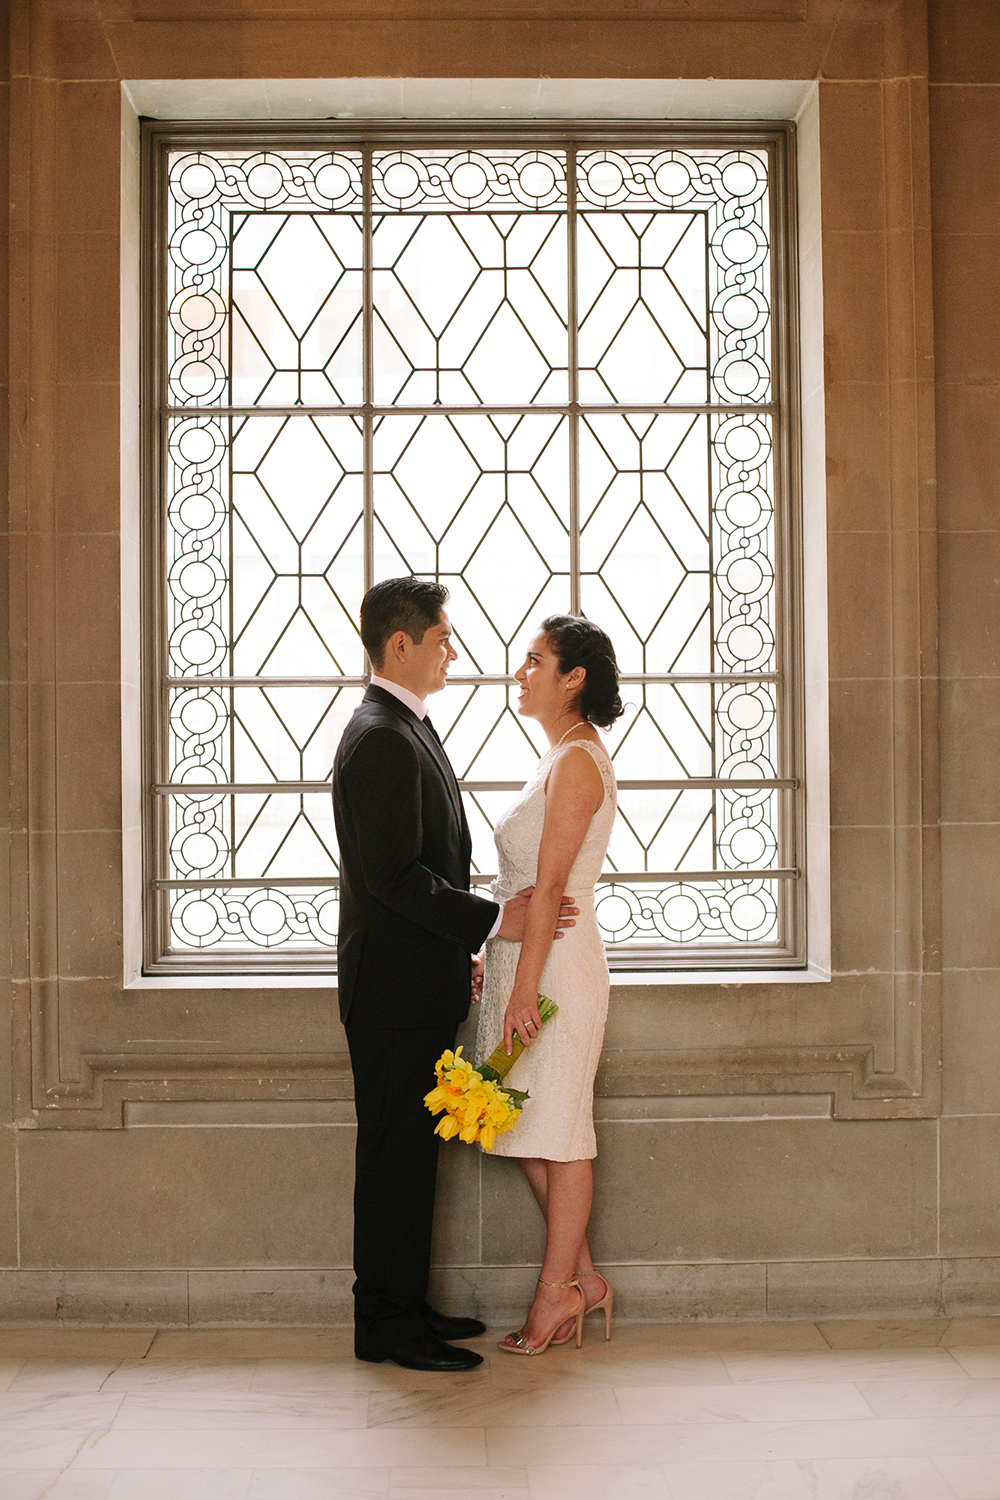 wedding-at-san-francisco-city-hall-18.html